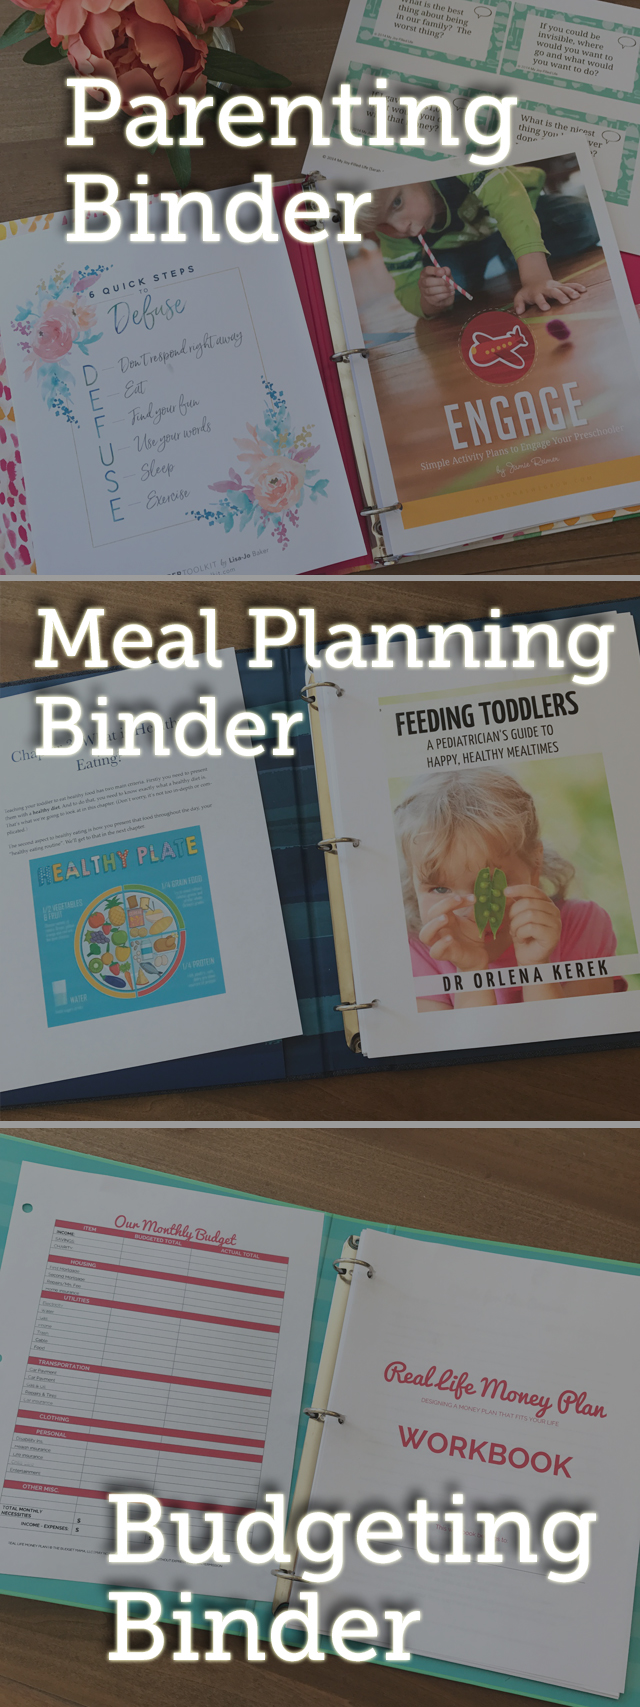 See how one mom uses three binders to organize her life like a boss!